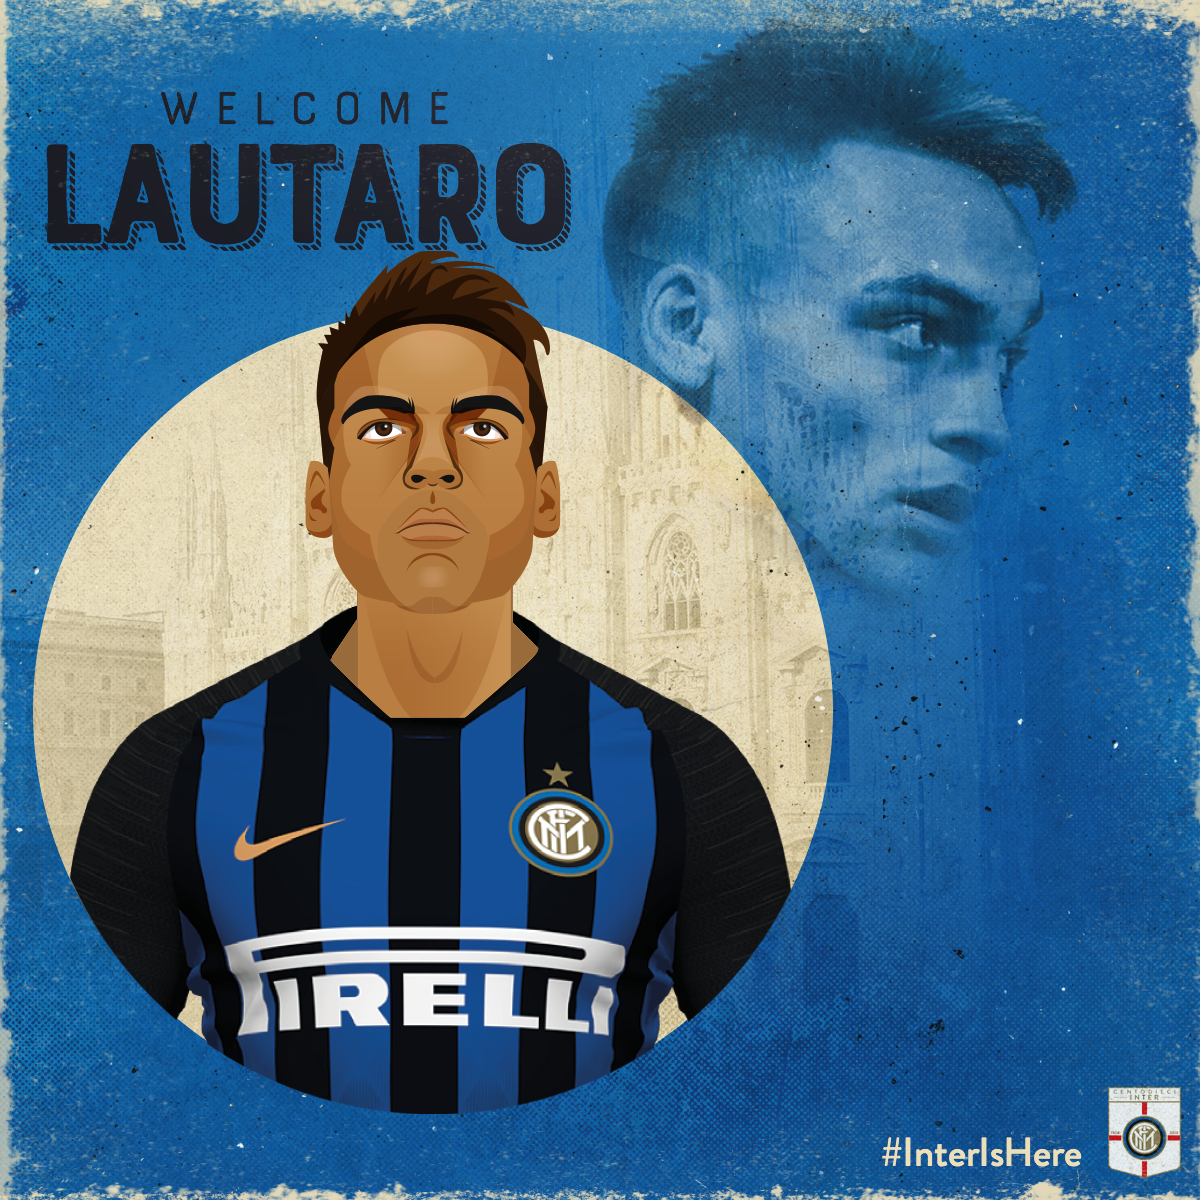 Lautaro Martinez   The Argentinian centre forward, dubbed the new Aguero, was signed by Inter for £20m from Racing Club. Hopes are high for the exciting striker.